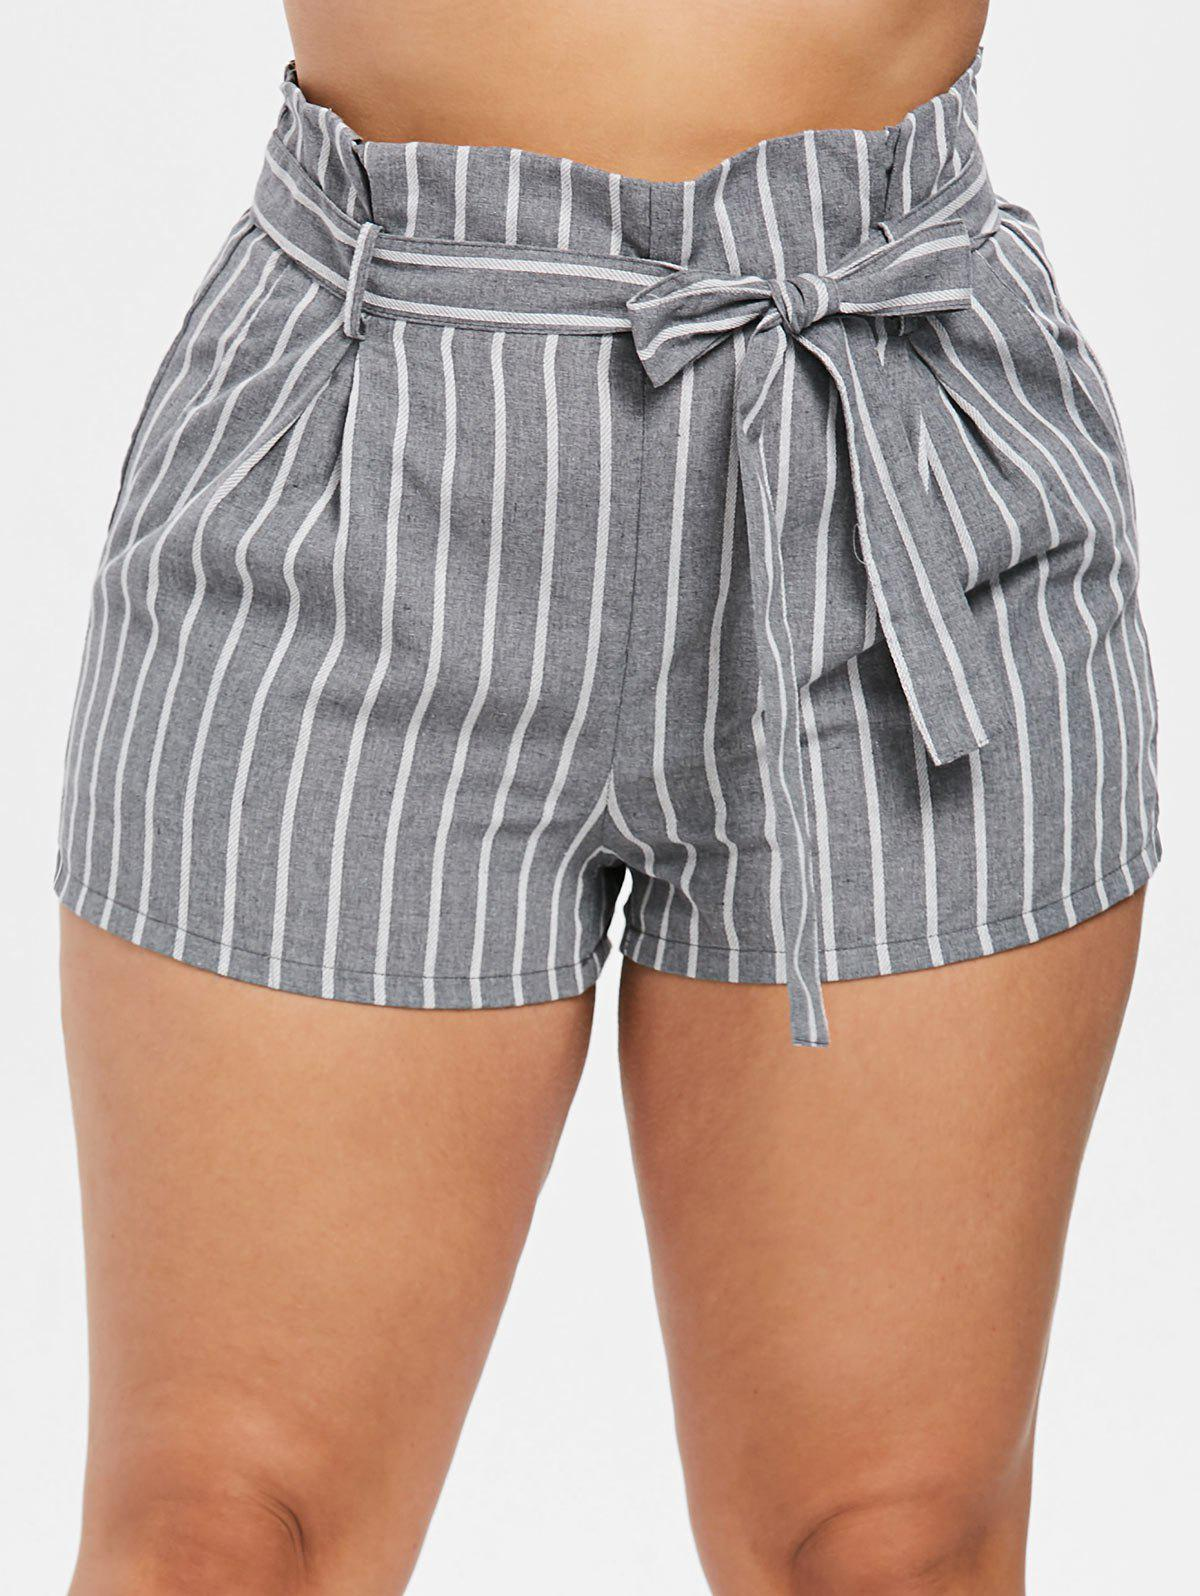 Belted Striped Plus Size Paper Bag Shorts